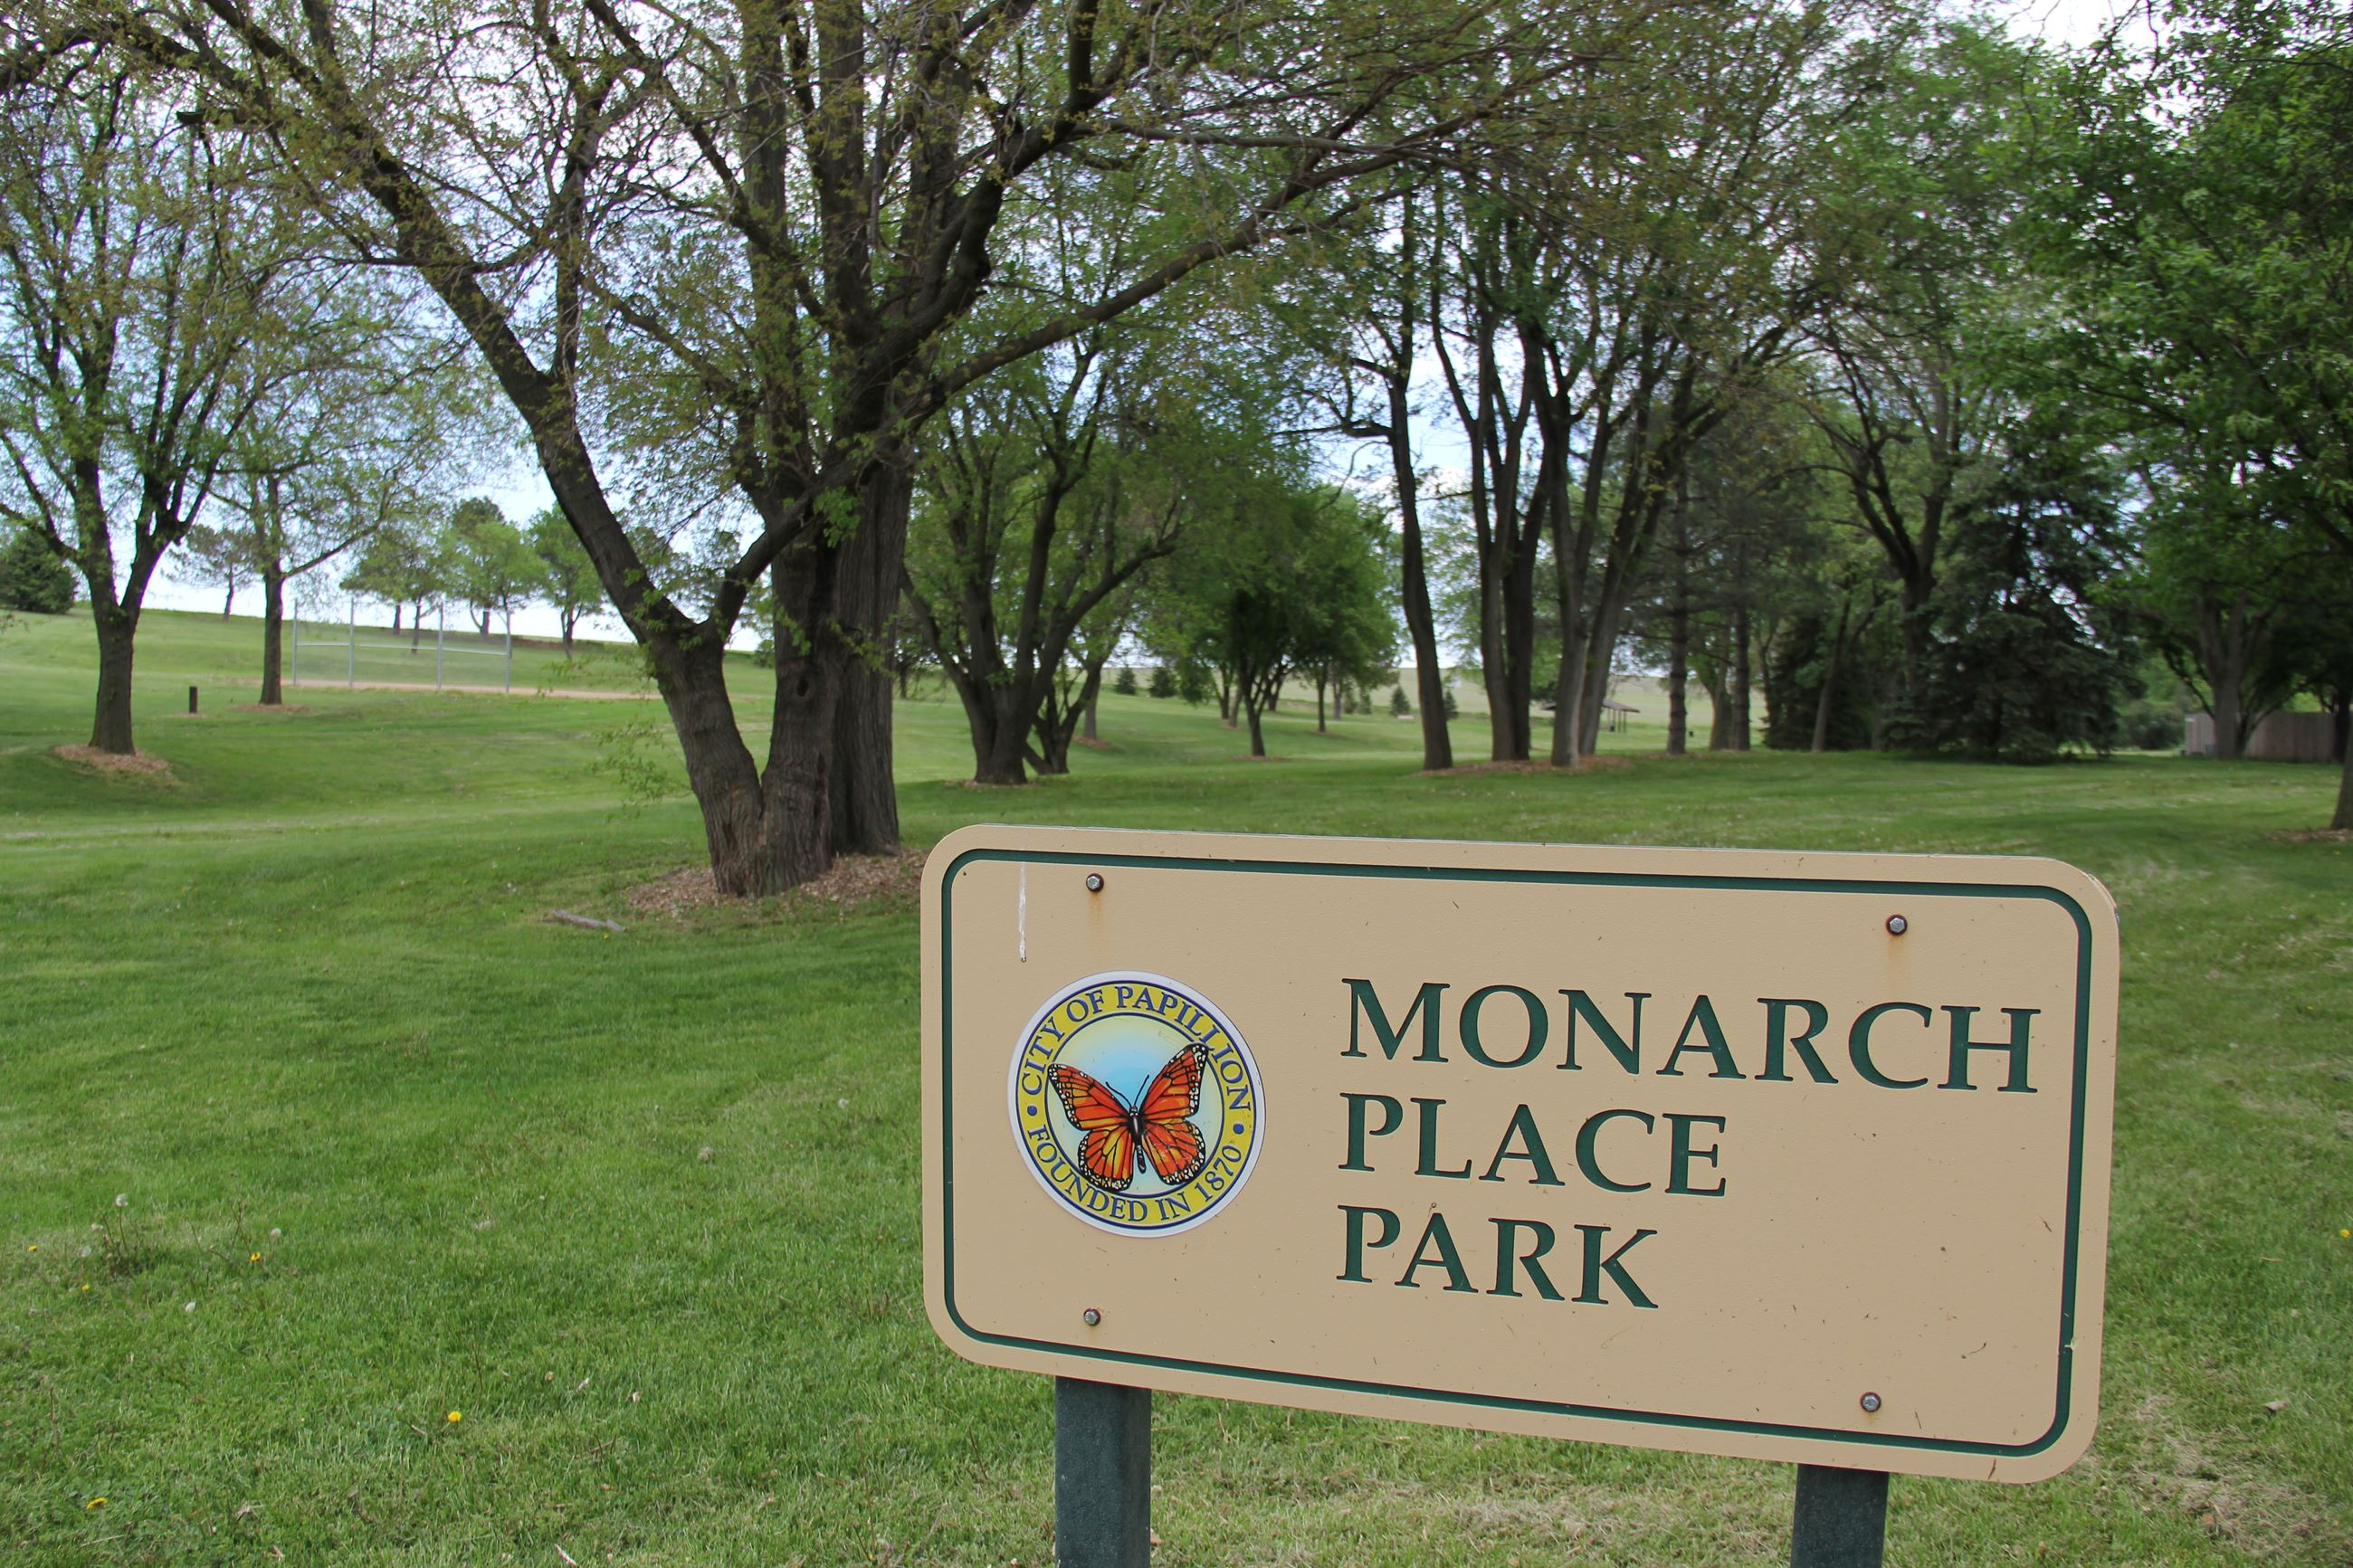 Monarch Place Park